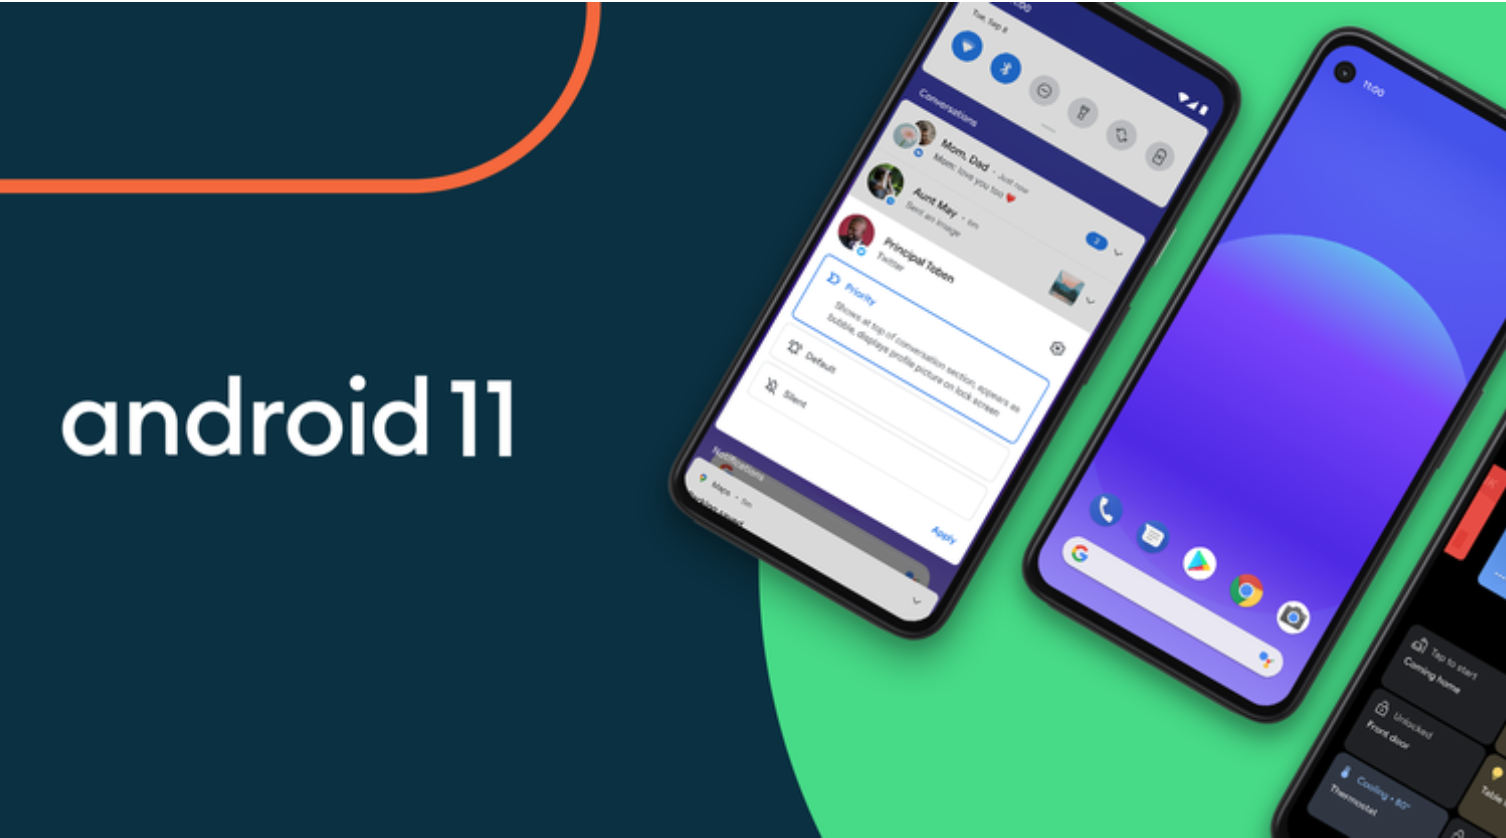 3 new Android 11 features that change the way you use your phone!